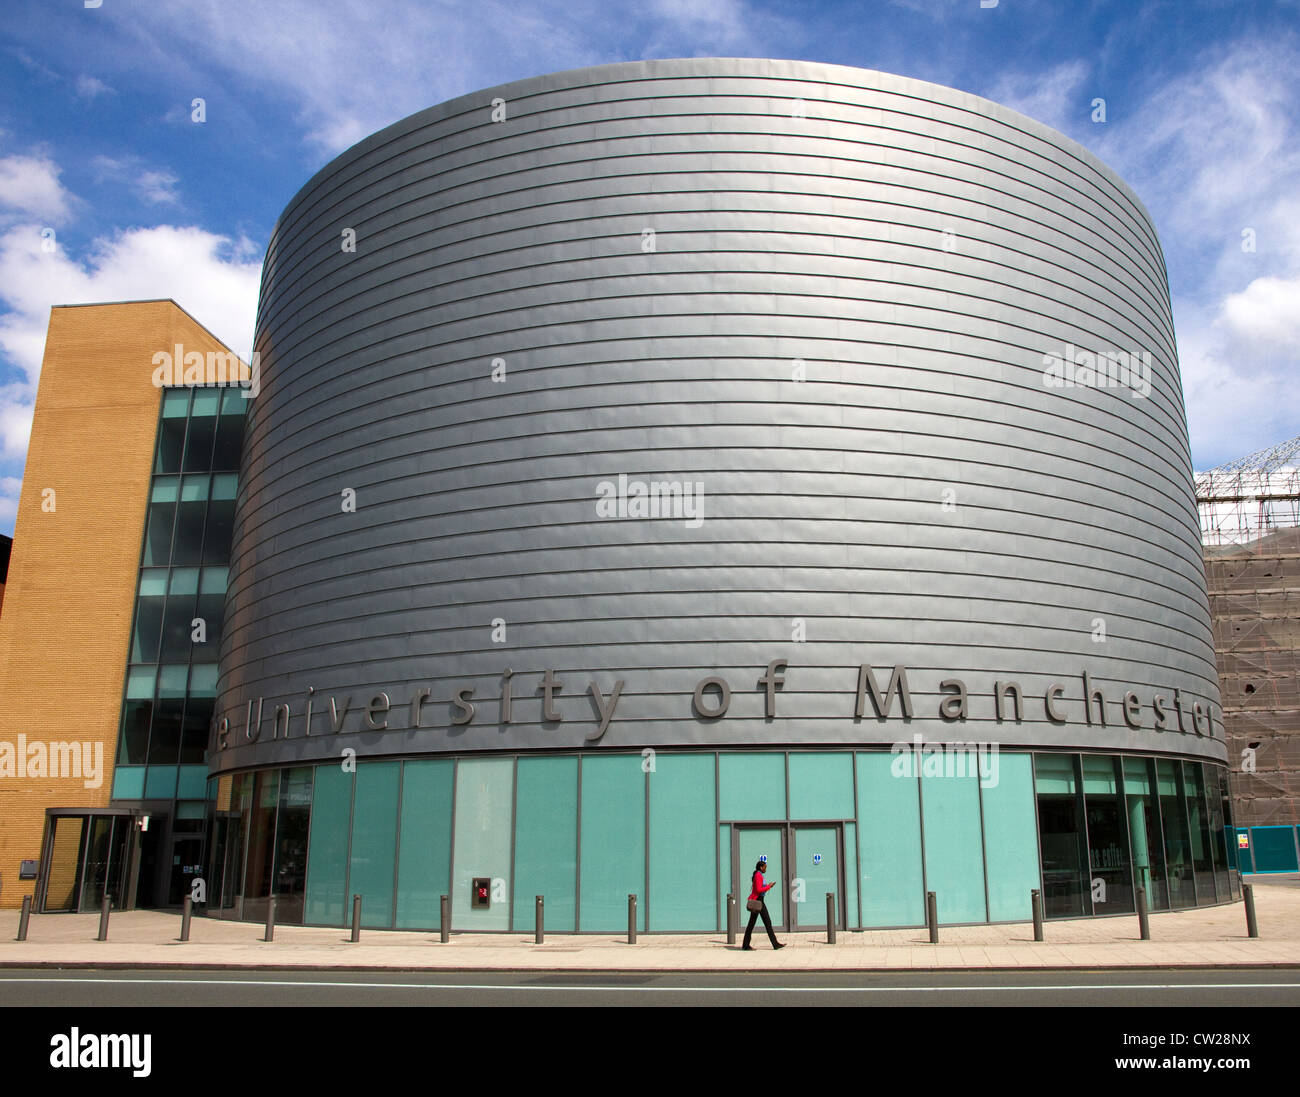 The Visitors' Centre, Oxford Rd., Manchester University, UK - Stock Image